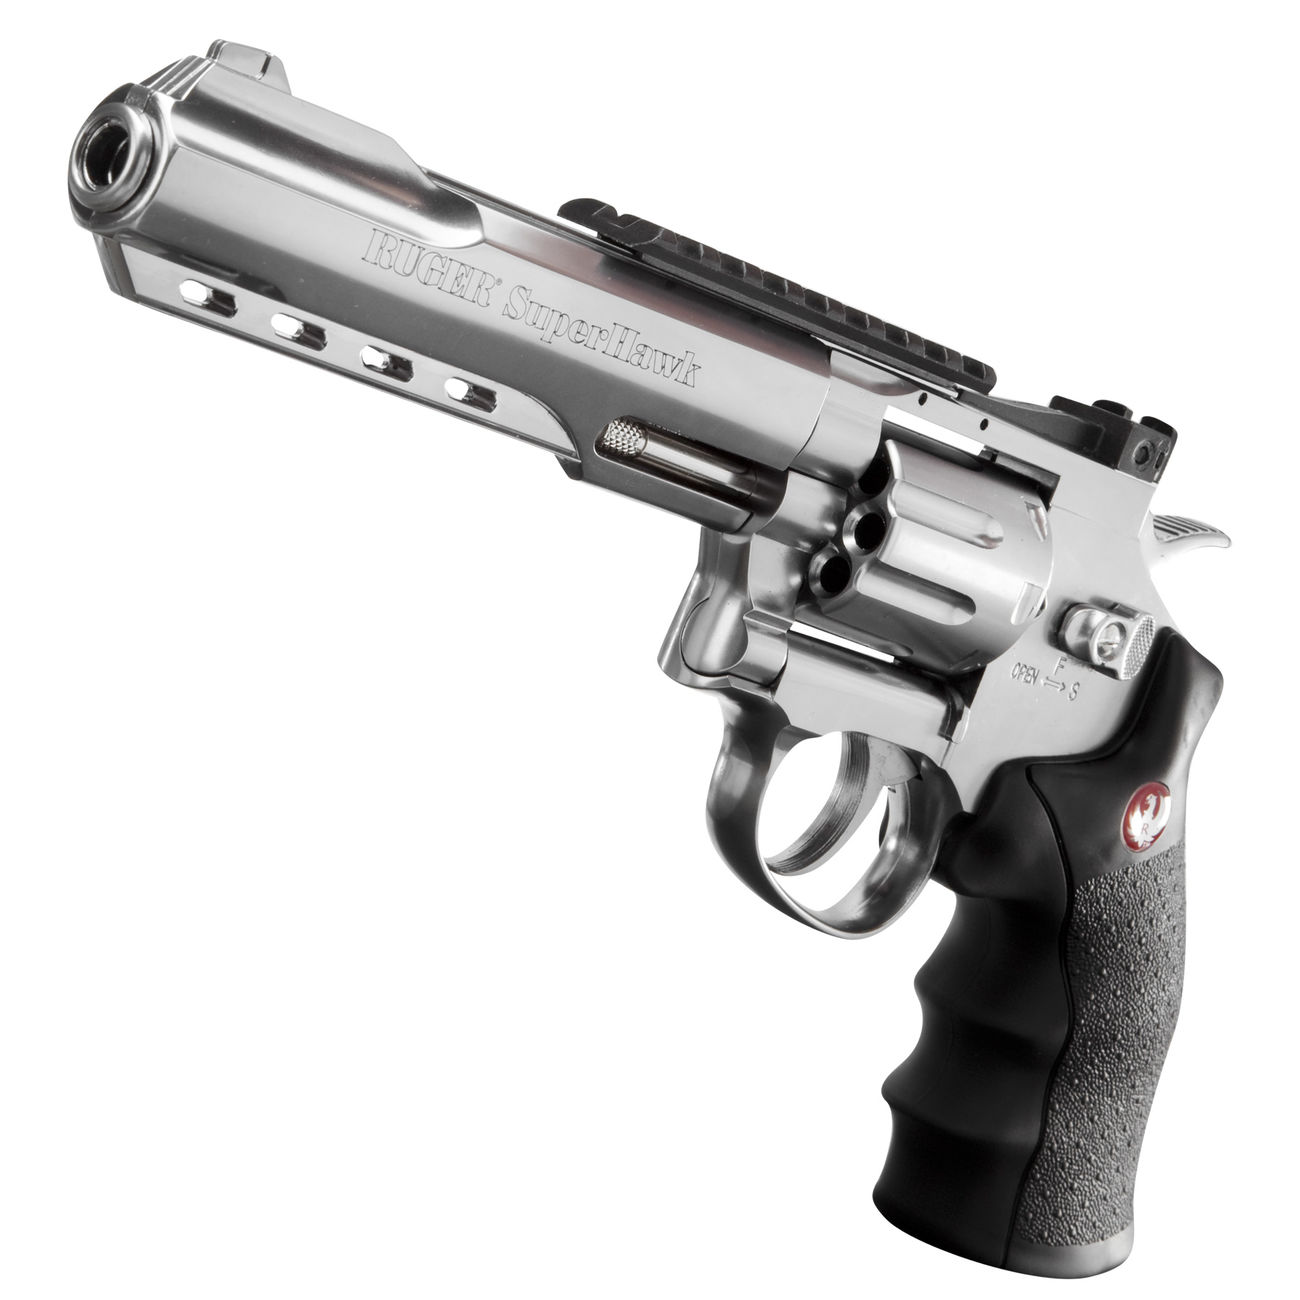 Ruger Super Hawk 6 Zoll 6mm BB CO2 Revolver chrom 1